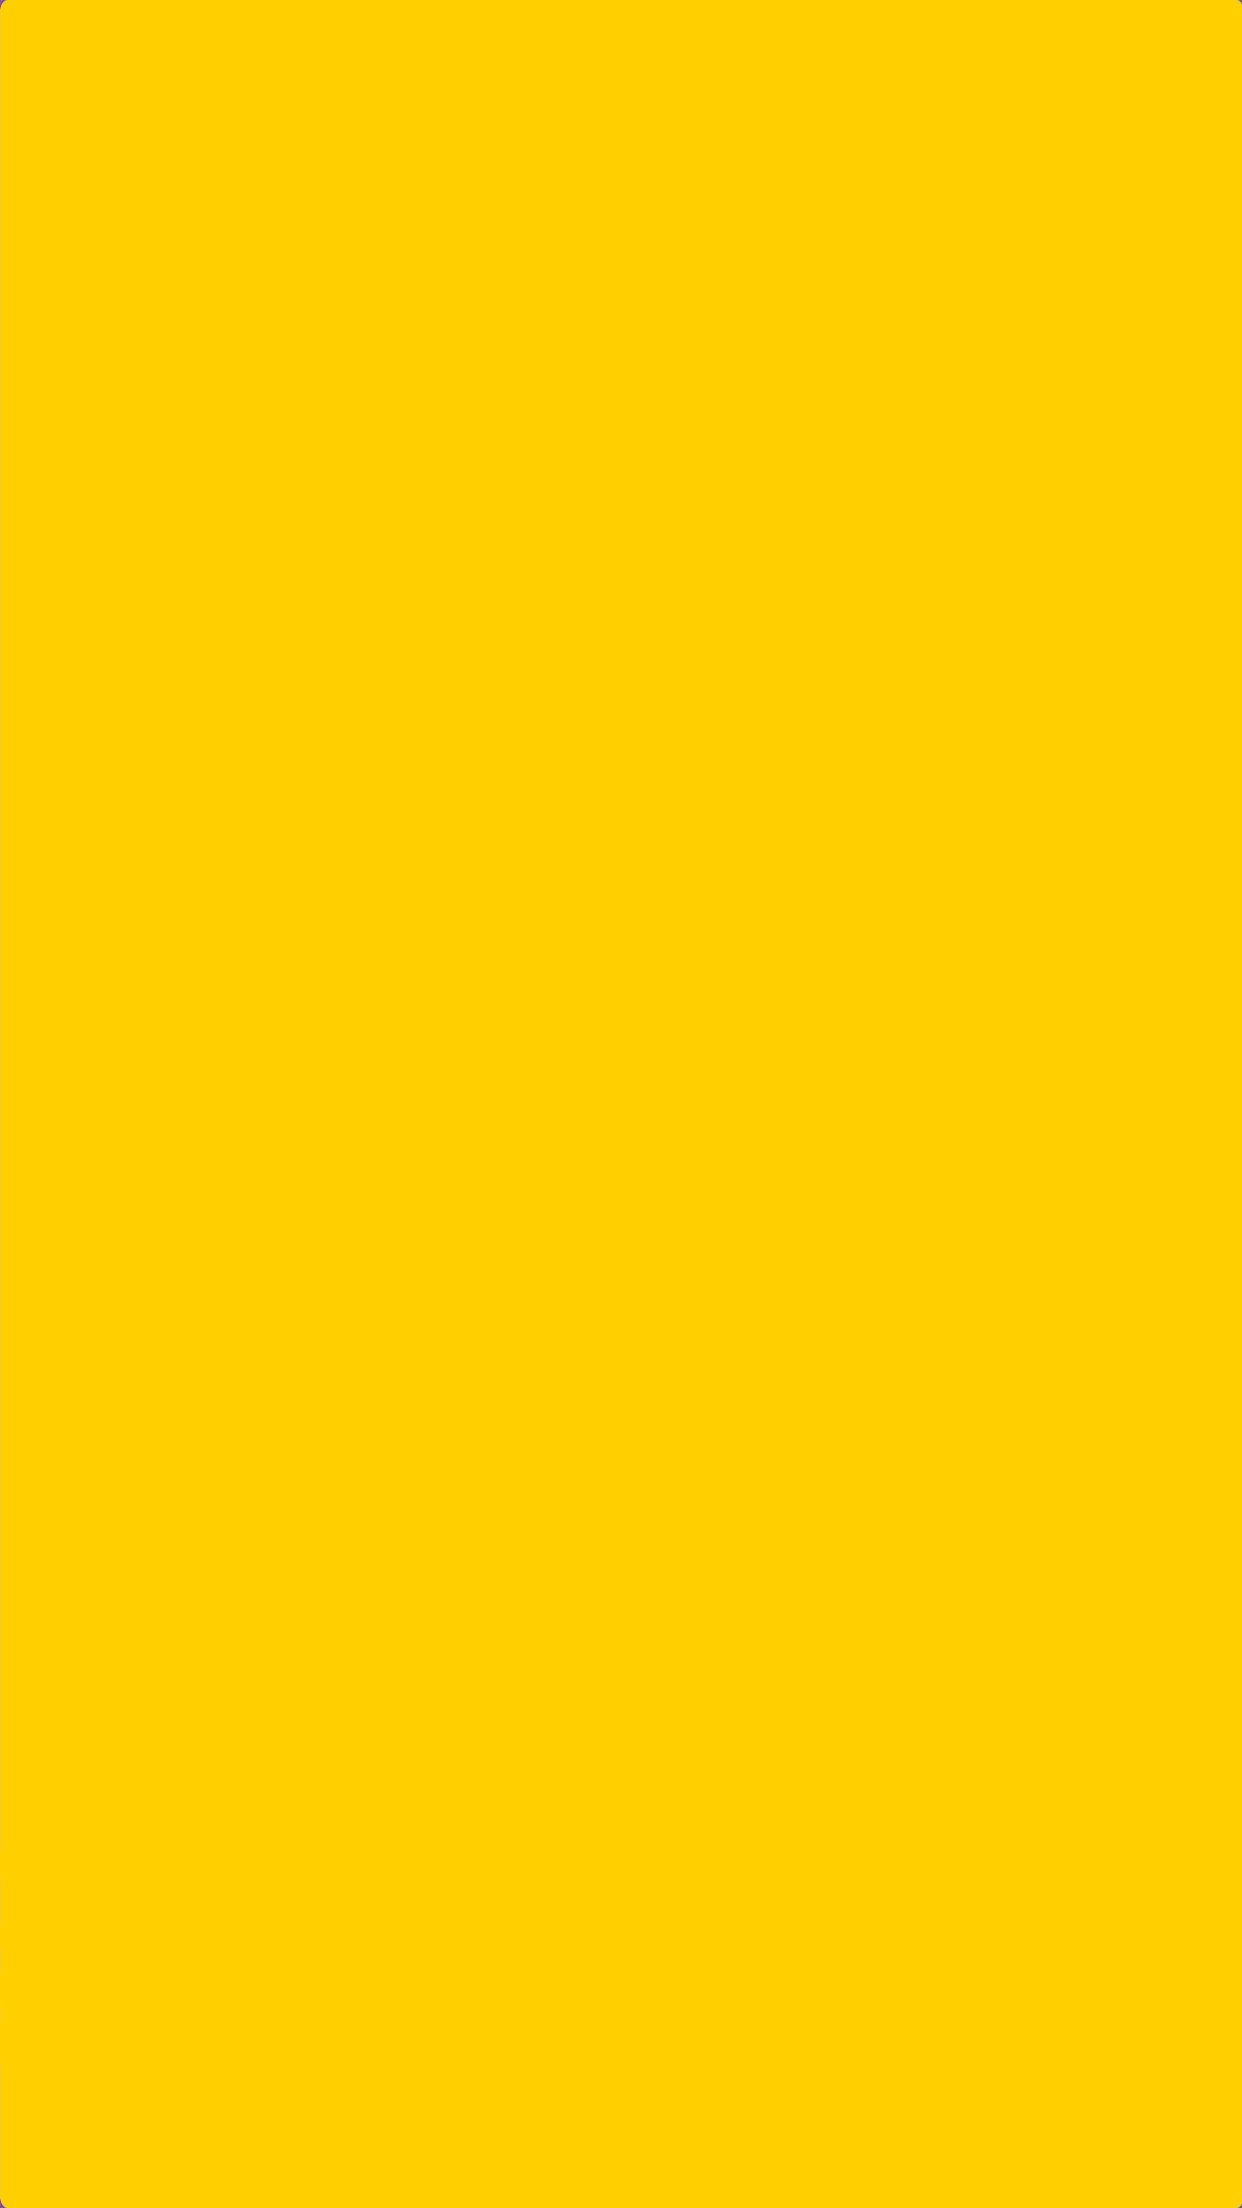 1242x2208 Solid Yellow Color iPhone